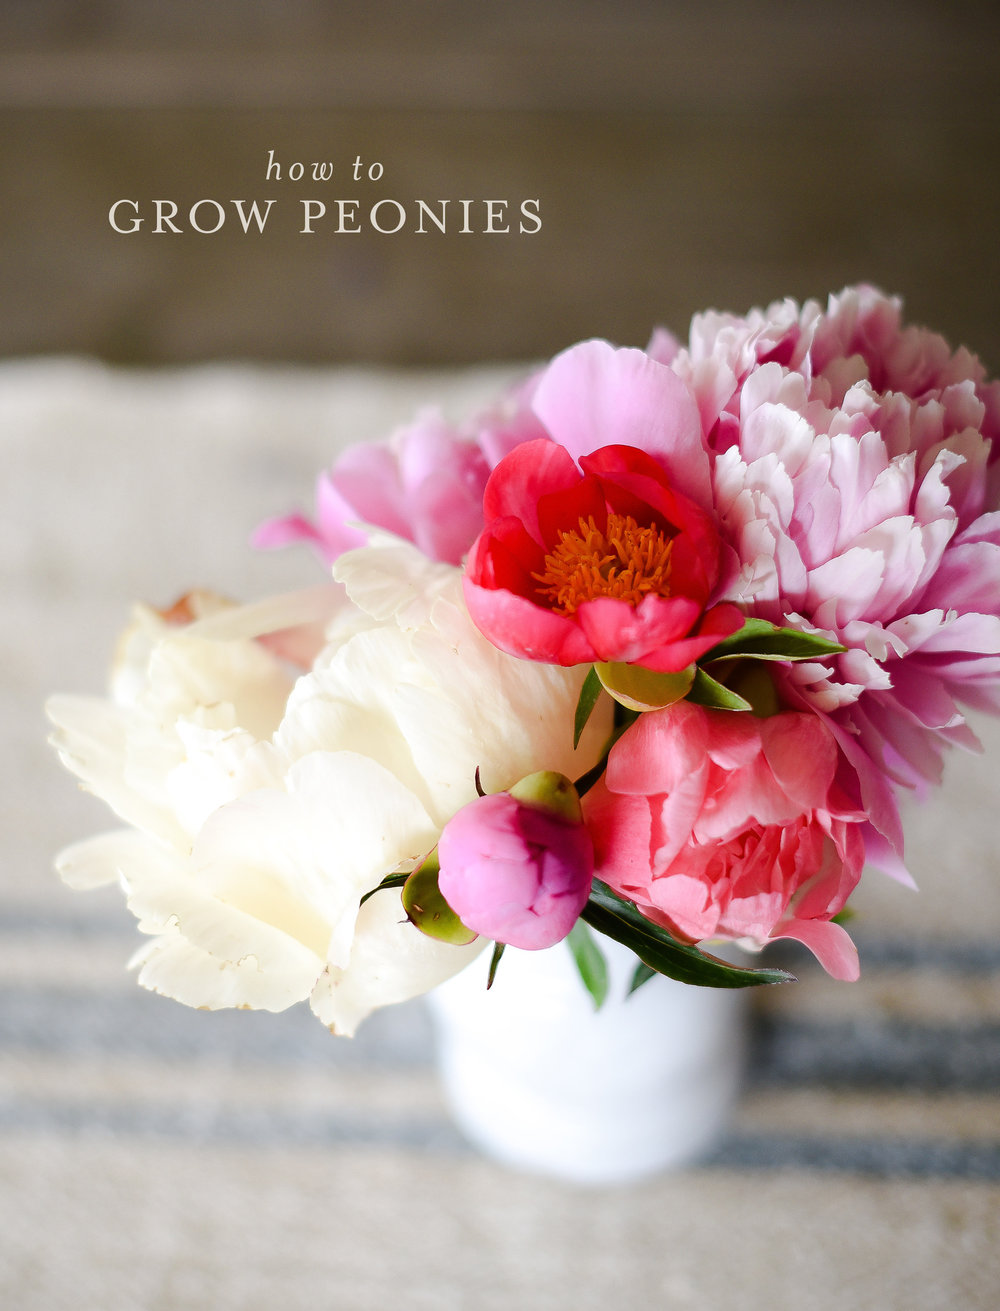 Growing peonies in a cut flower garden with free download for gardening success! boxwoodavenue.com #peonies #growingpeonies #flowergarden #gardening